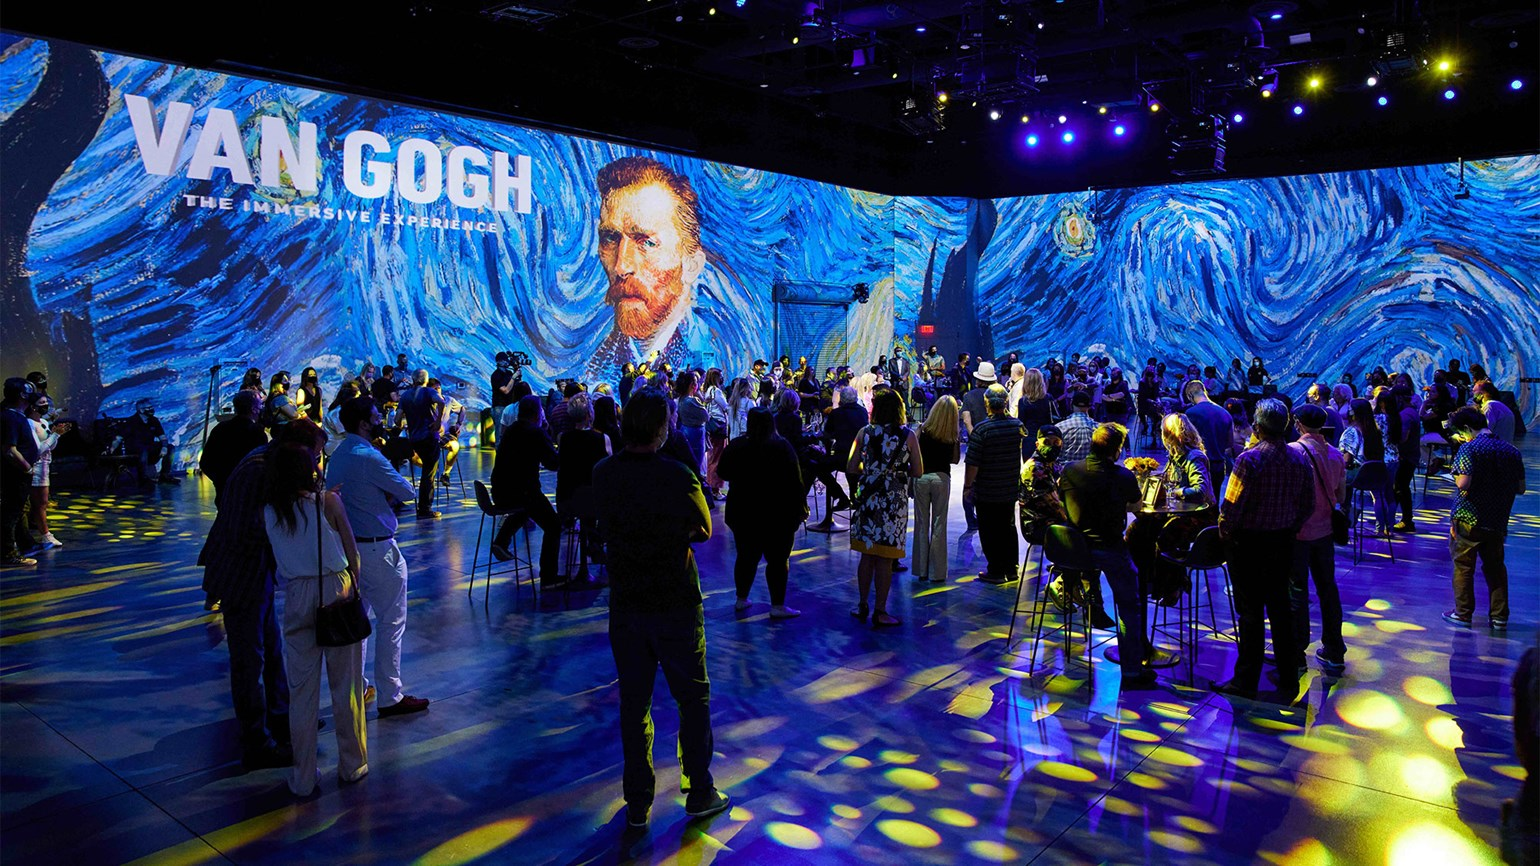 Area15 opens a virtual Van Gogh exhibit of its own